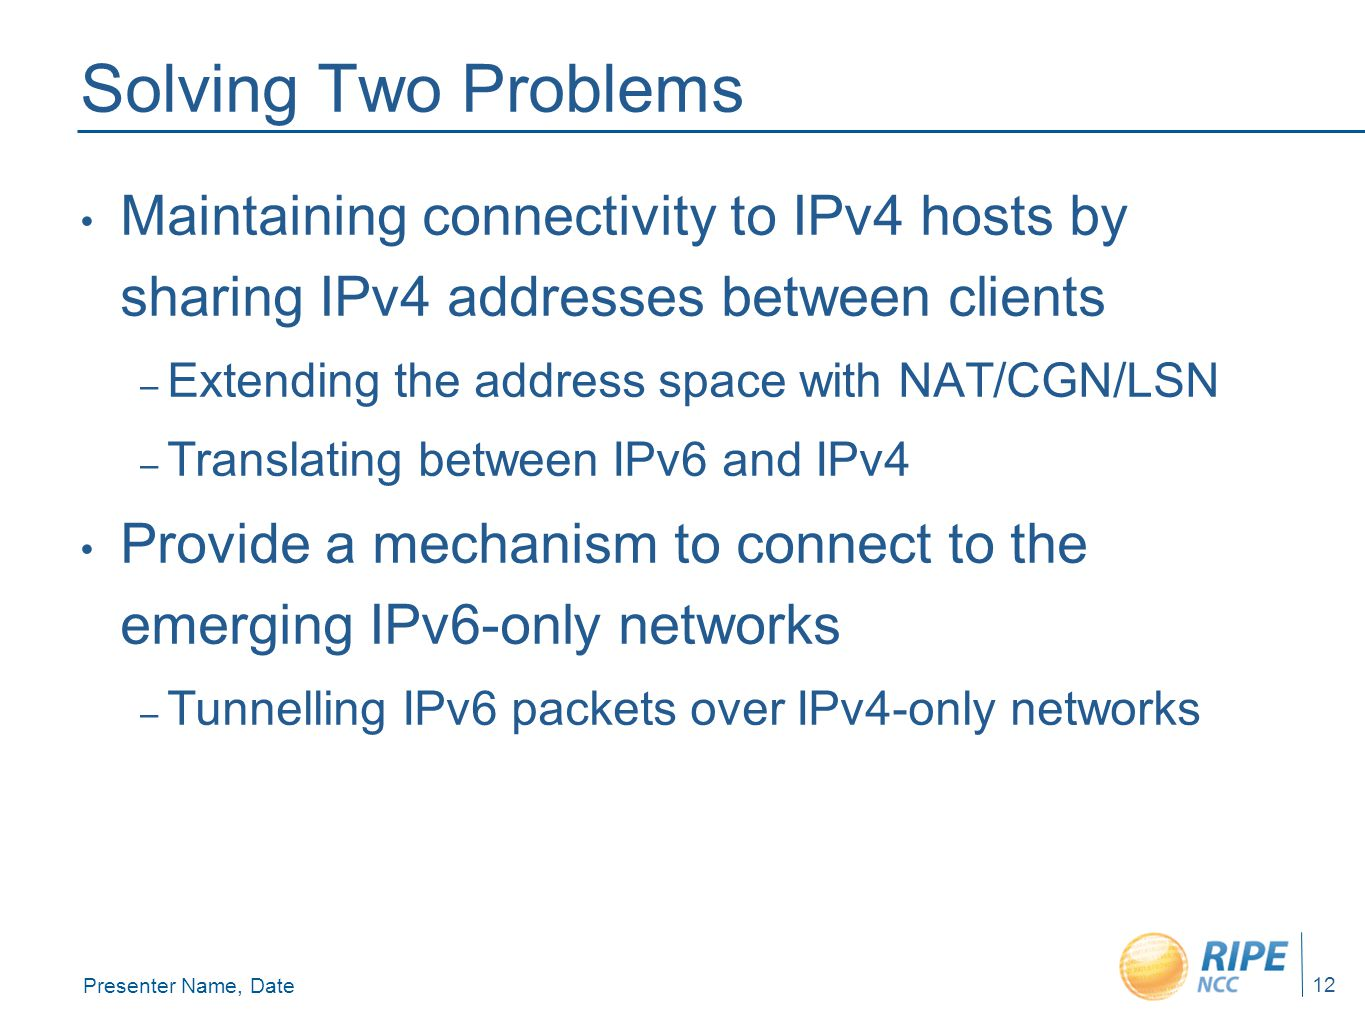 Presenter Name, Date 12 Solving Two Problems Maintaining connectivity to IPv4 hosts by sharing IPv4 addresses between clients – Extending the address space with NAT/CGN/LSN – Translating between IPv6 and IPv4 Provide a mechanism to connect to the emerging IPv6-only networks – Tunnelling IPv6 packets over IPv4-only networks